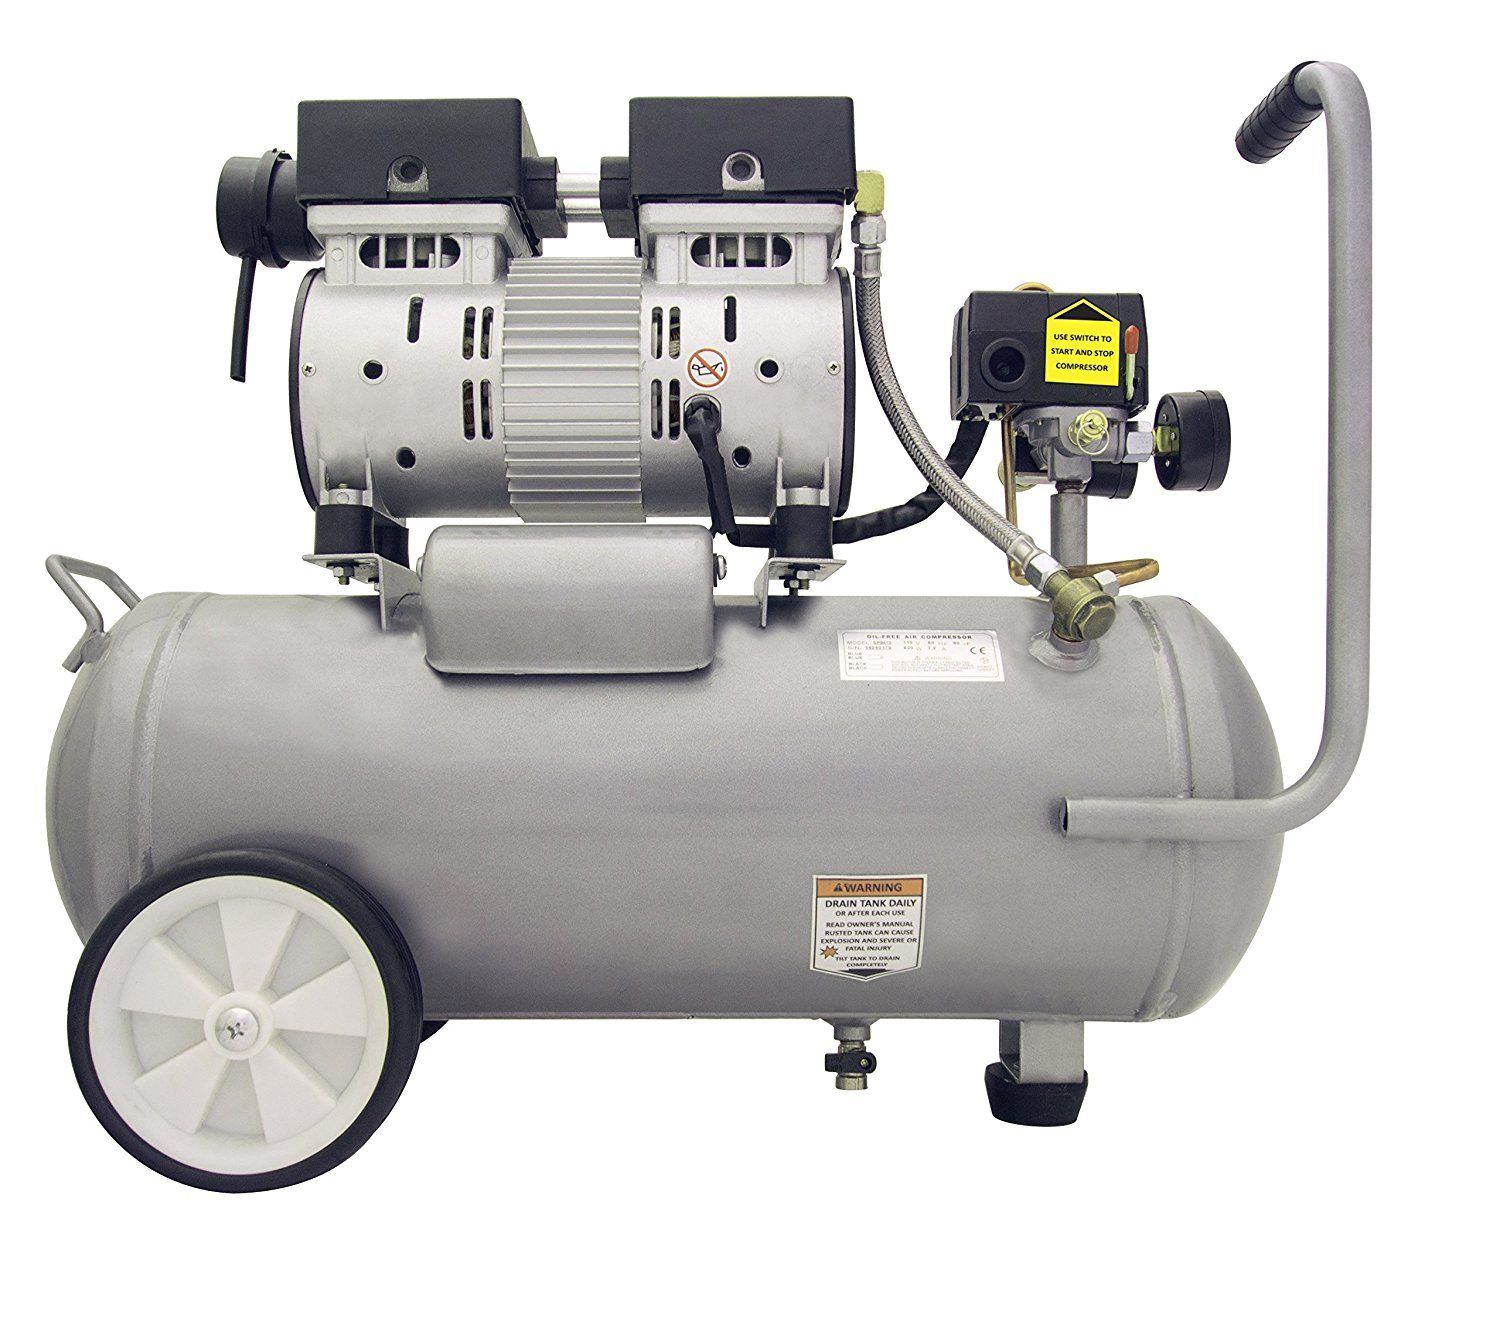 The Scope Of The Report Includes A Detailed Study Of Oil Free Air Compressor Market With Th Best Portable Air Compressor Portable Air Compressor Air Compressor